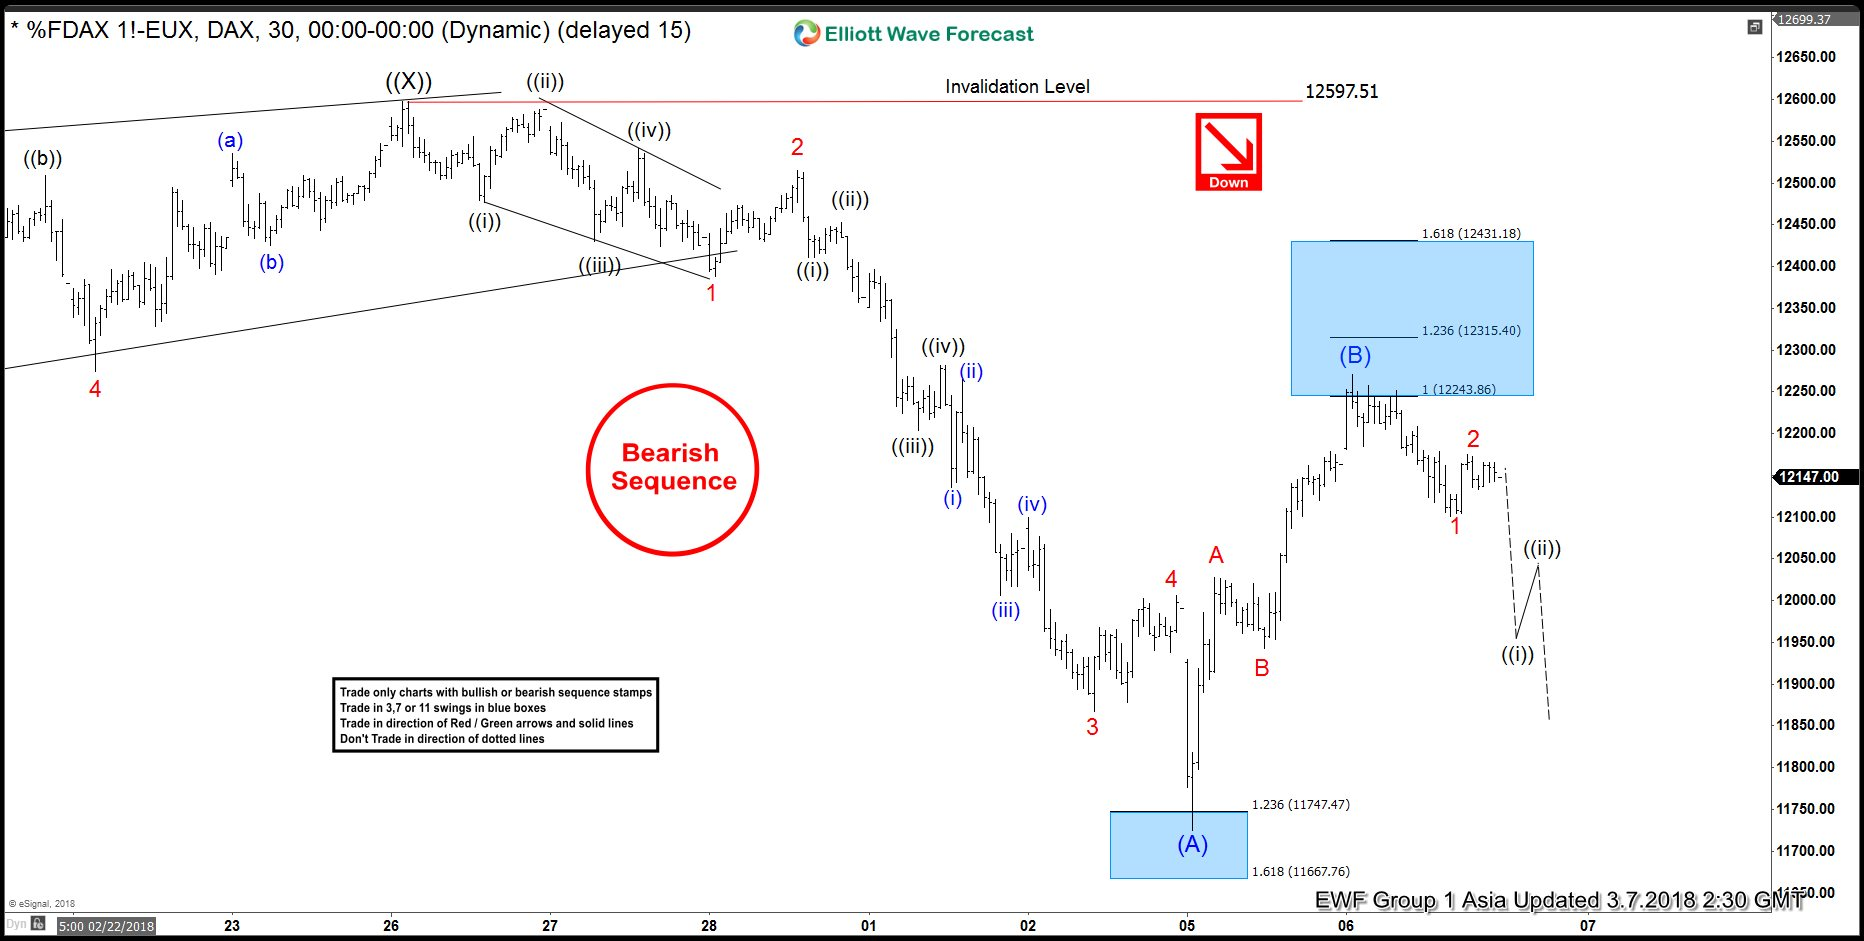 DAX Elliott Wave View: Correction Ended